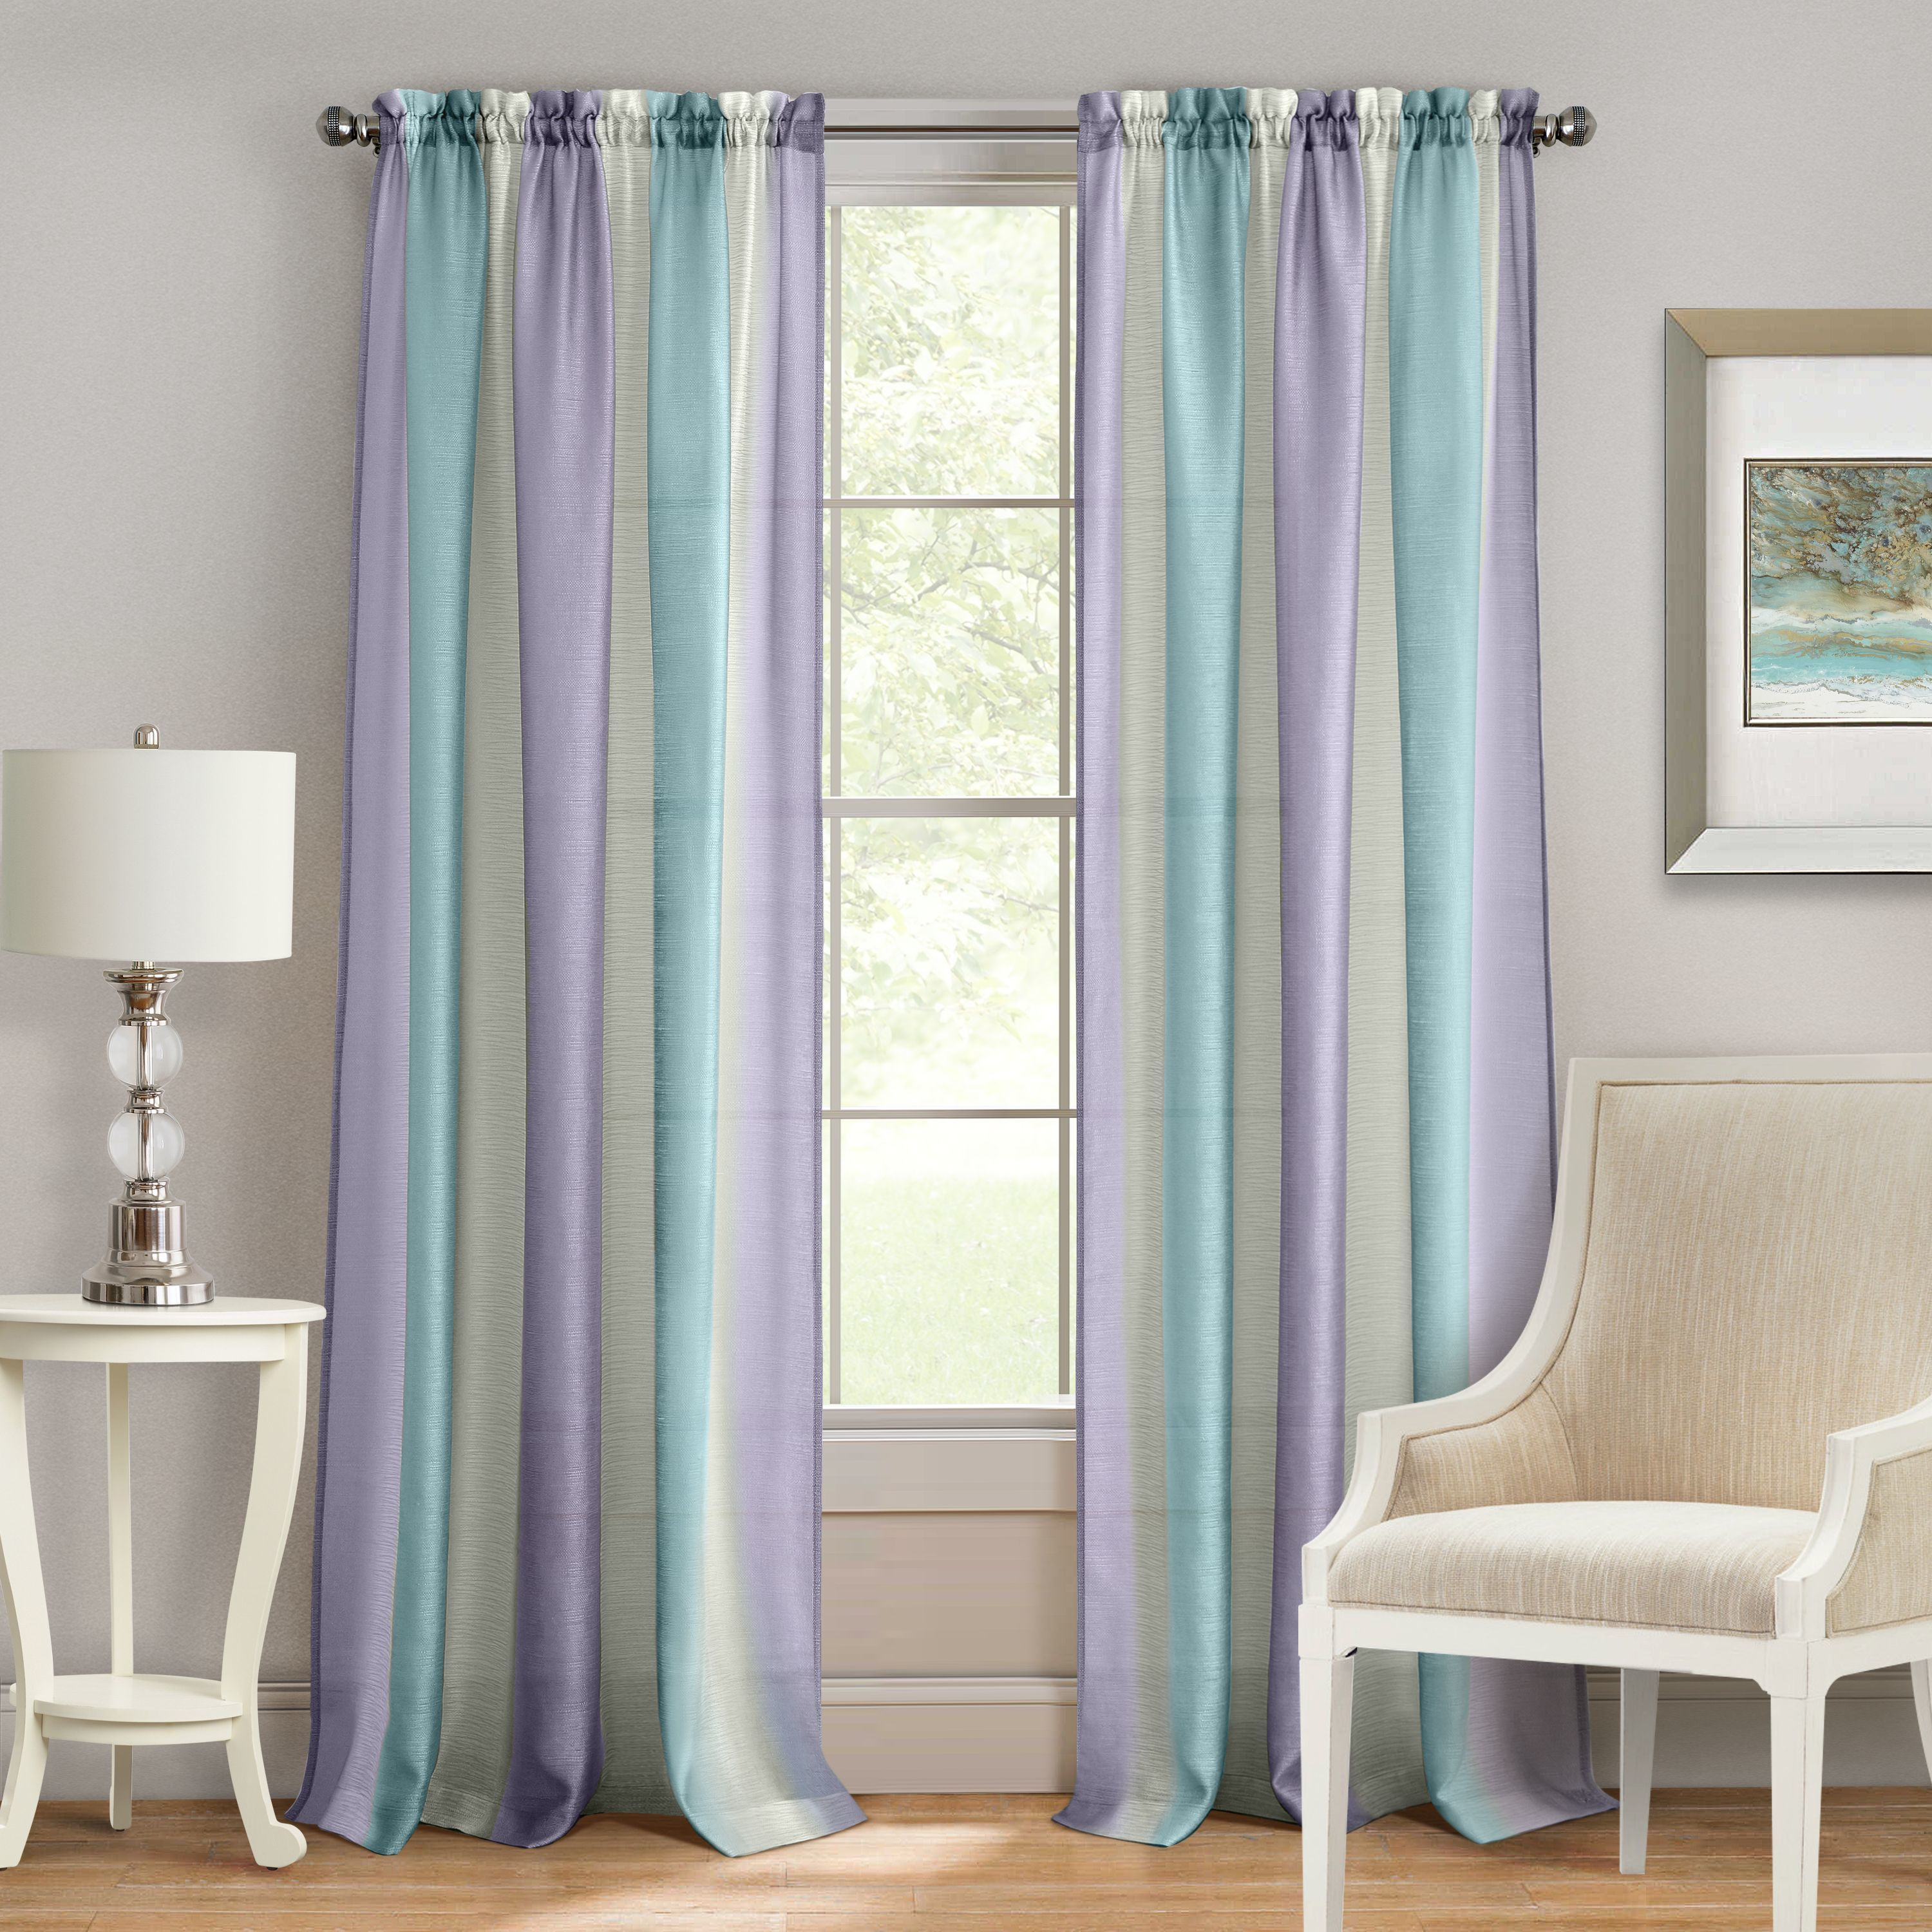 Spectrum Rod Pocket Window Curtain Panel (84 Inches - Silver)